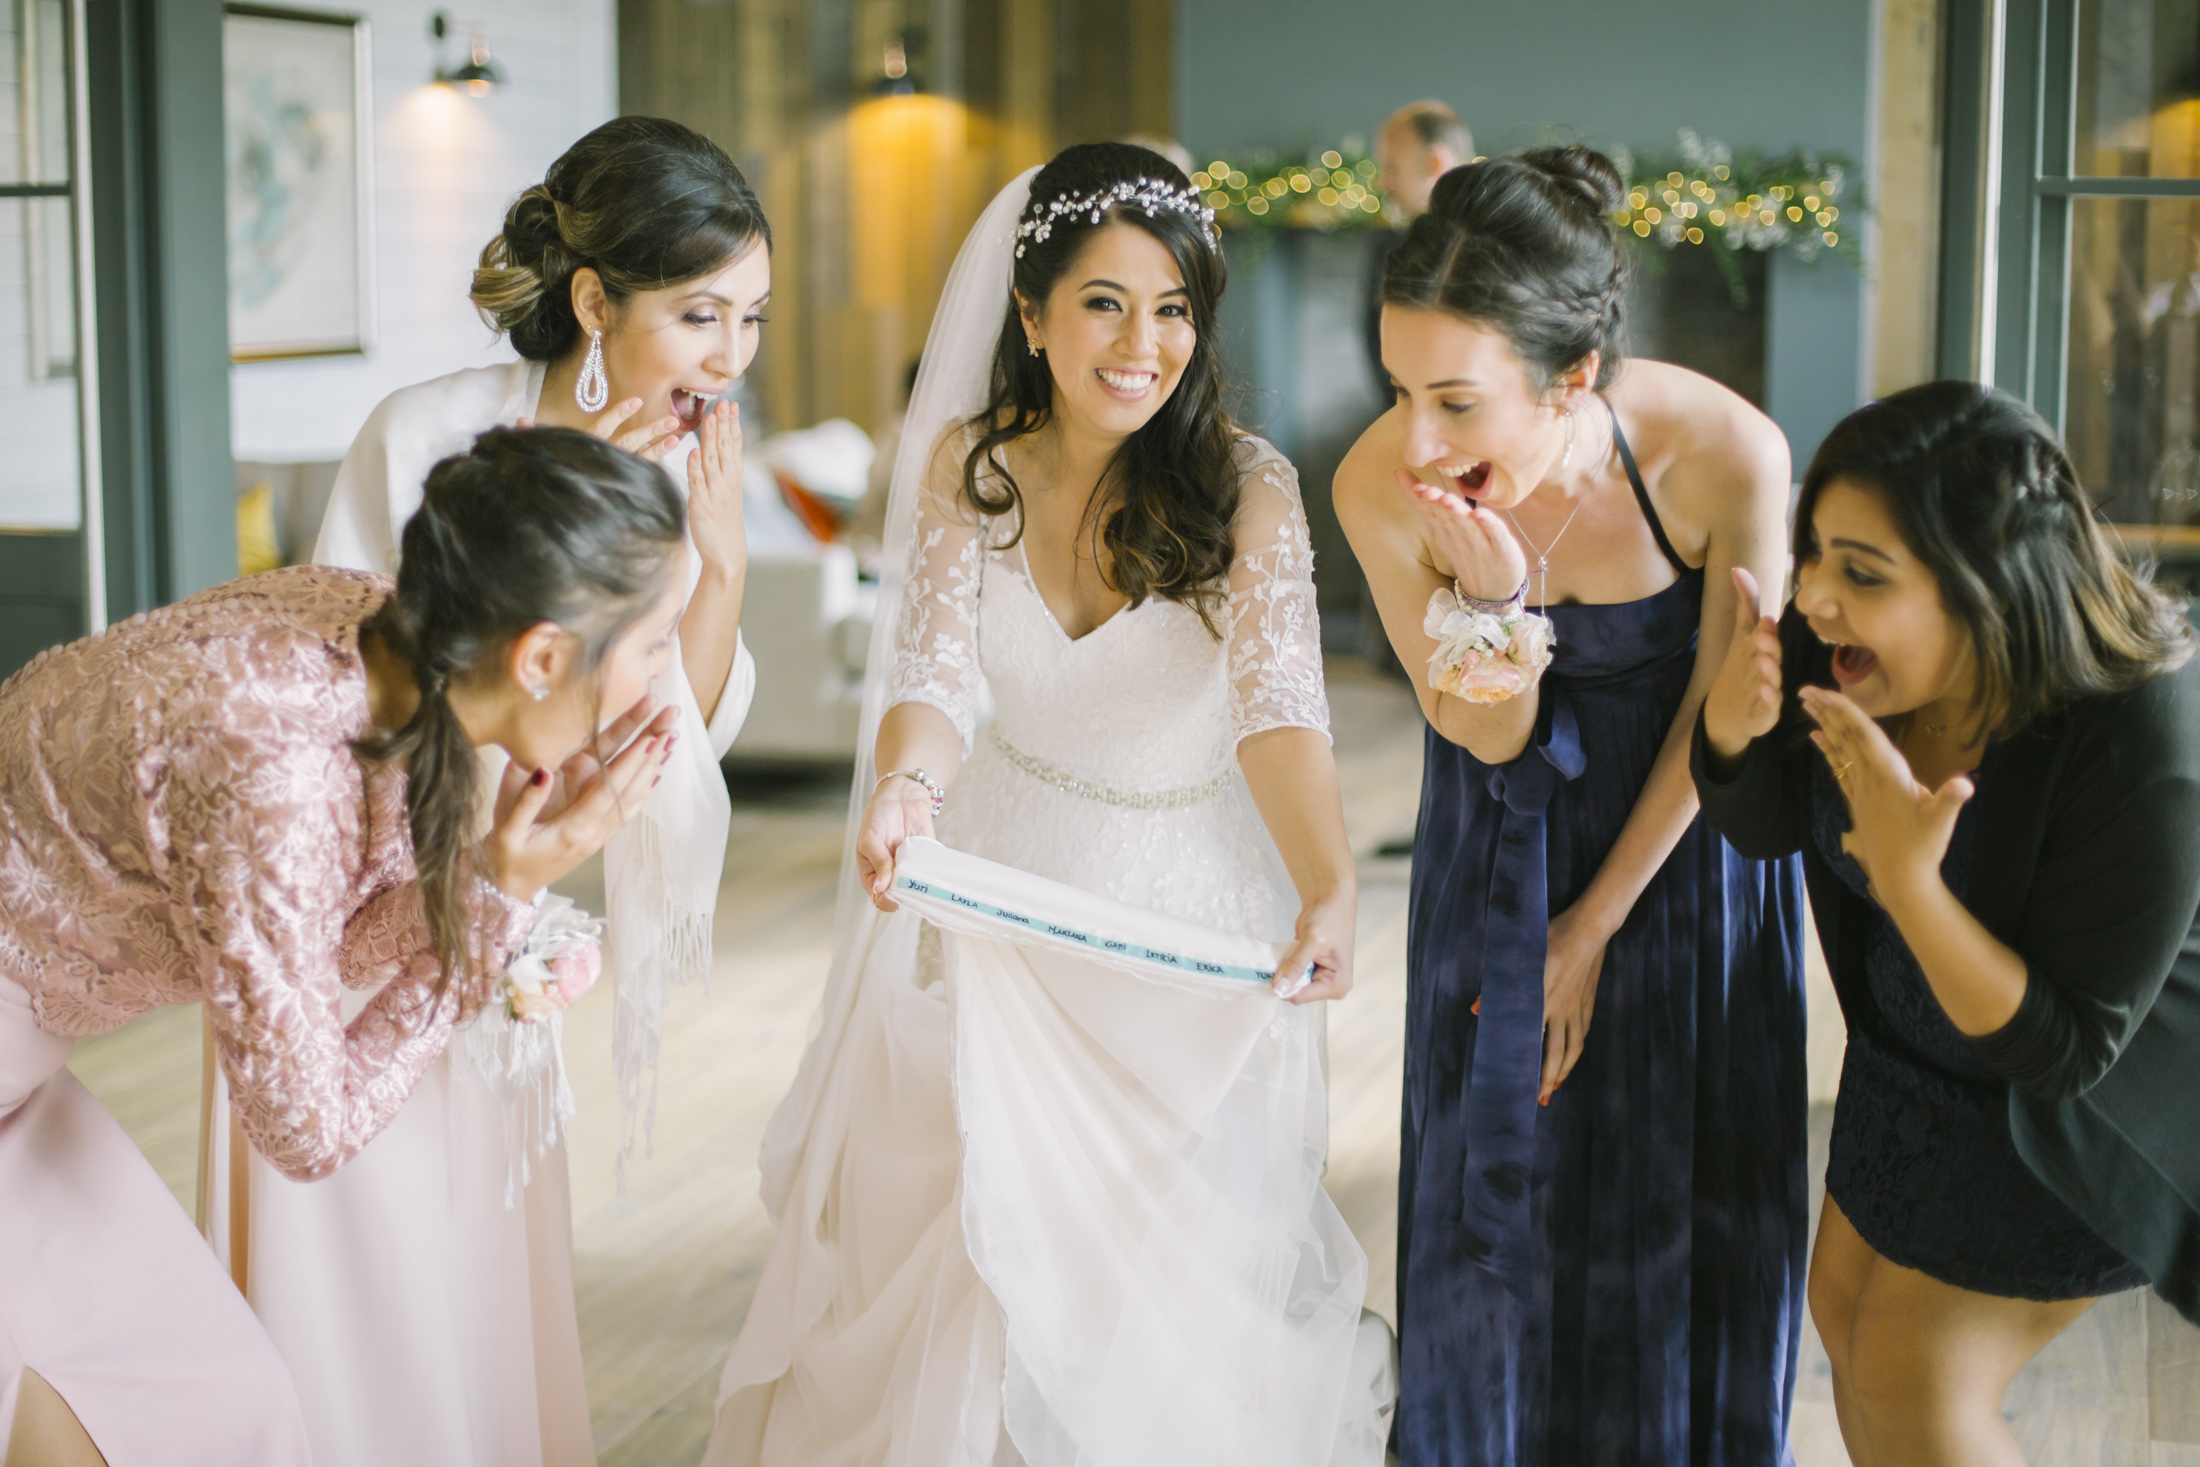 Brazillian wedding traditions | Single names in the hem of the dress